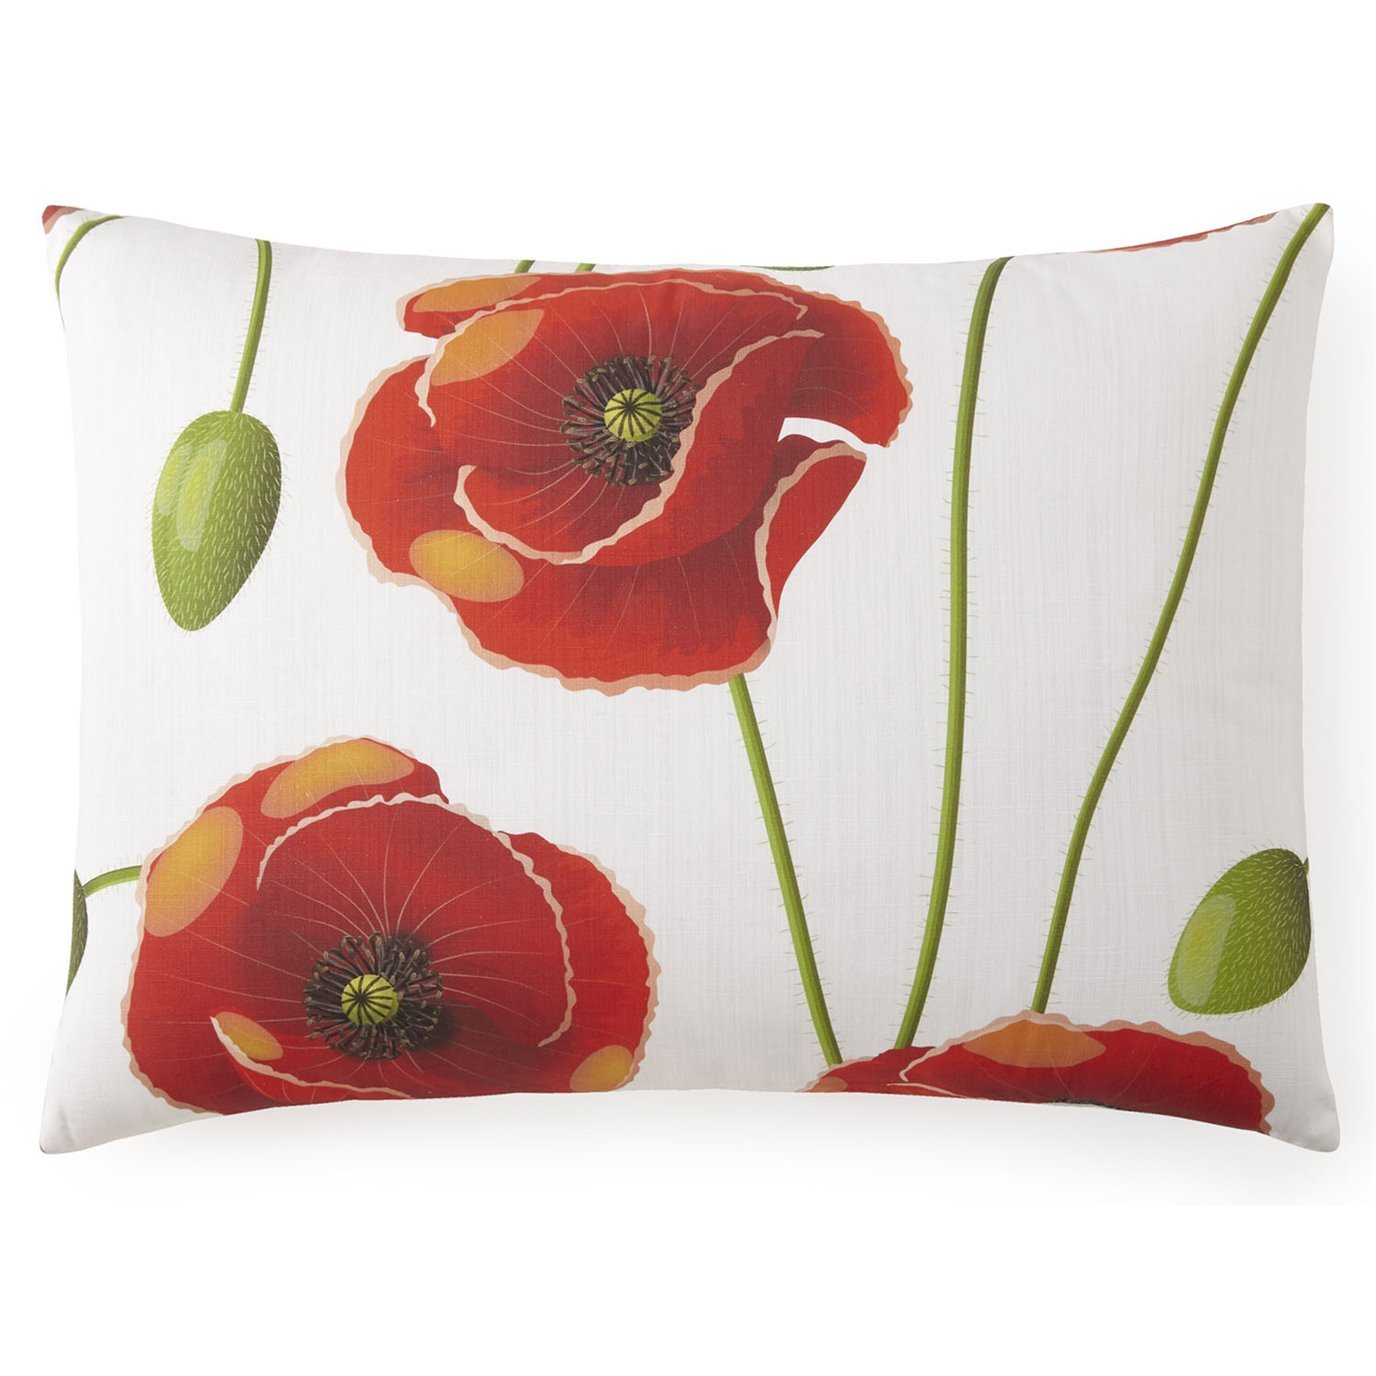 "Poppy Plaid Pillow Sham King - 20""x36"" - Each"